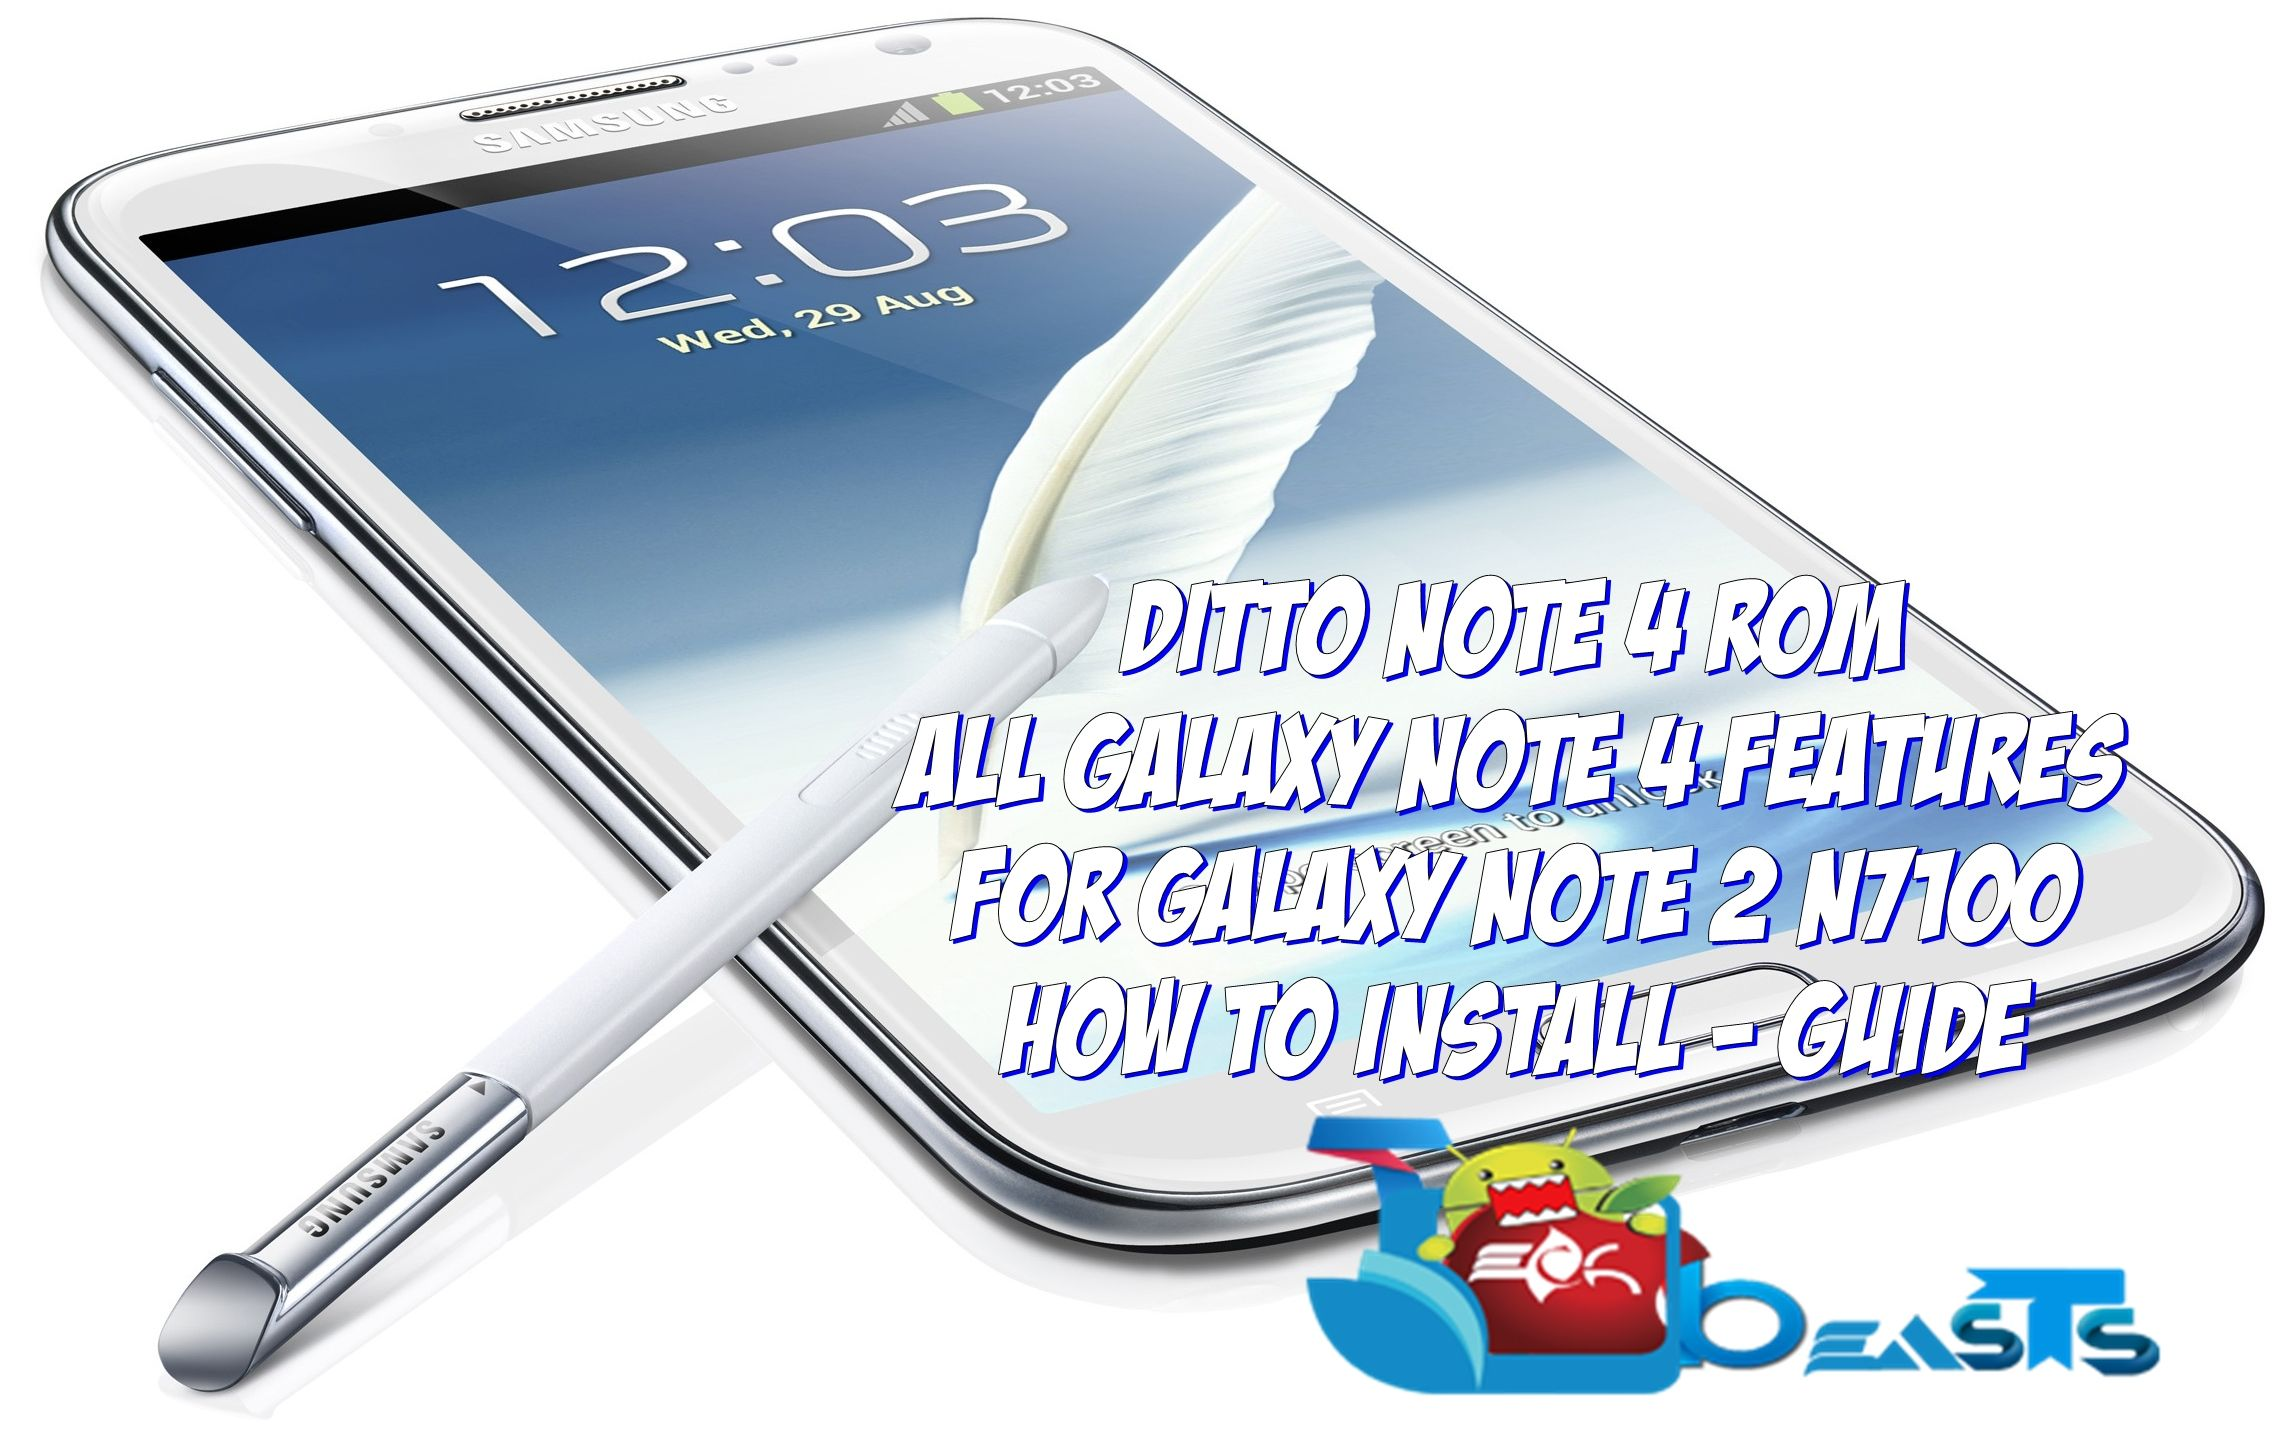 Install Ditto Note 4(DN4) ROM on Galaxy Note 2 and get all